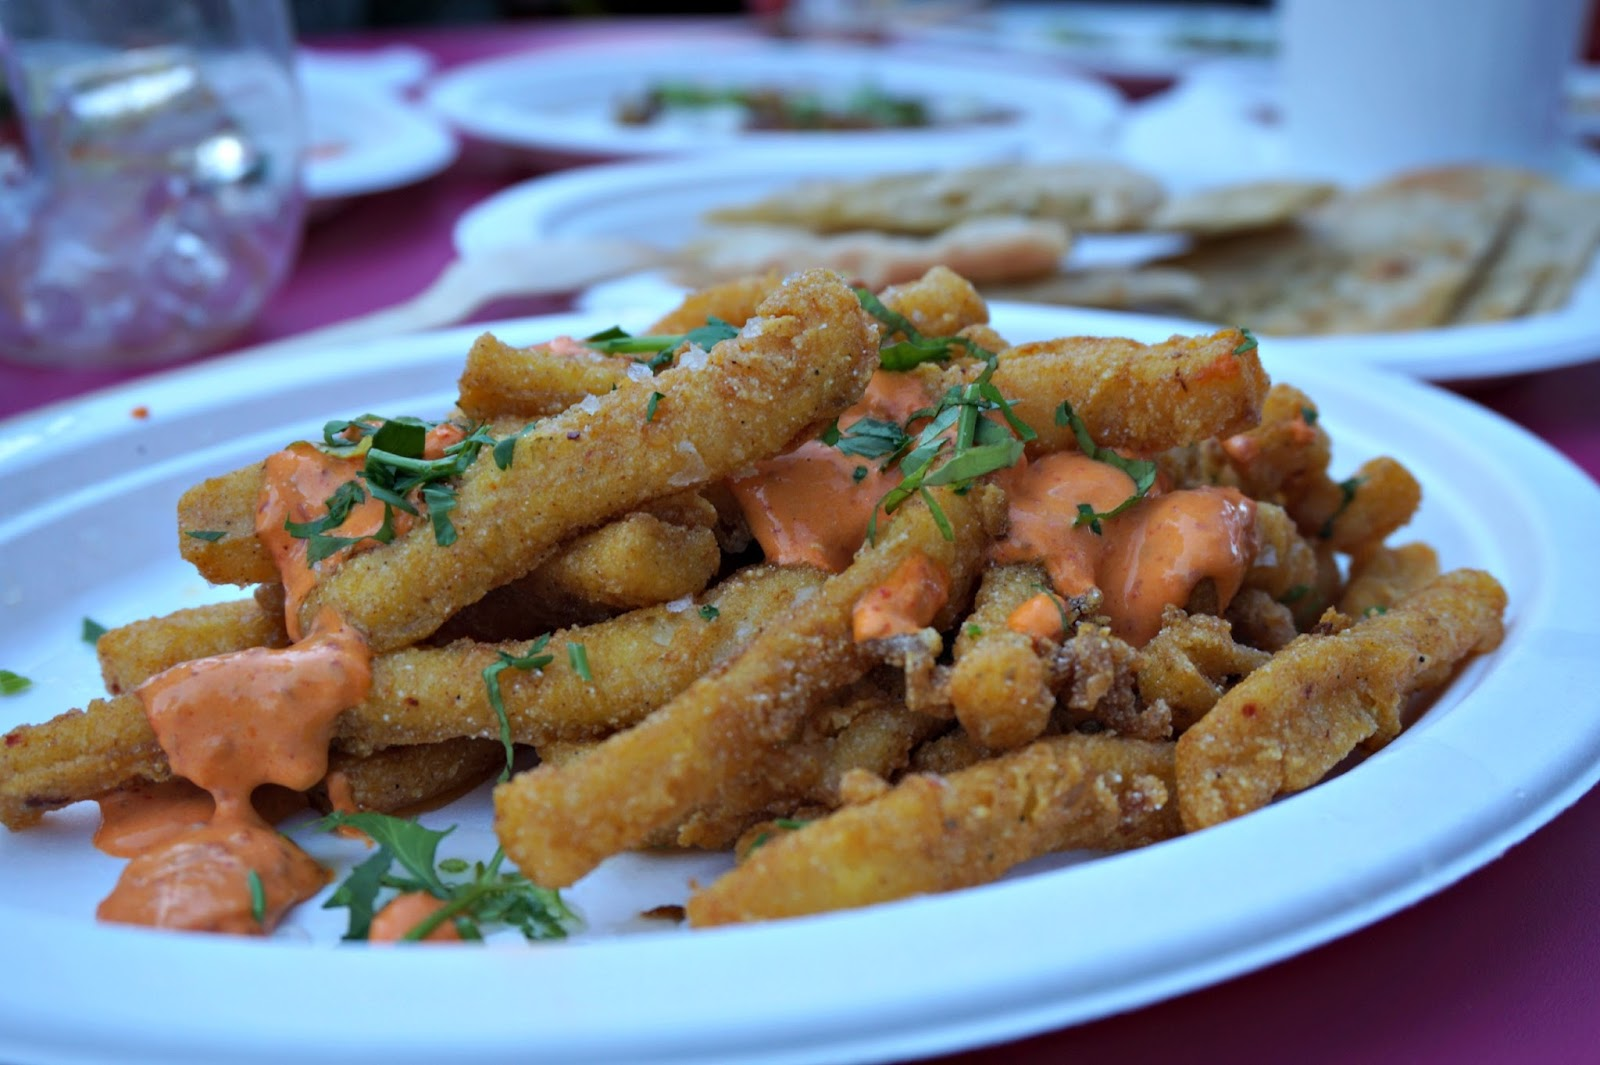 Plate of deep fried calamari and sauce